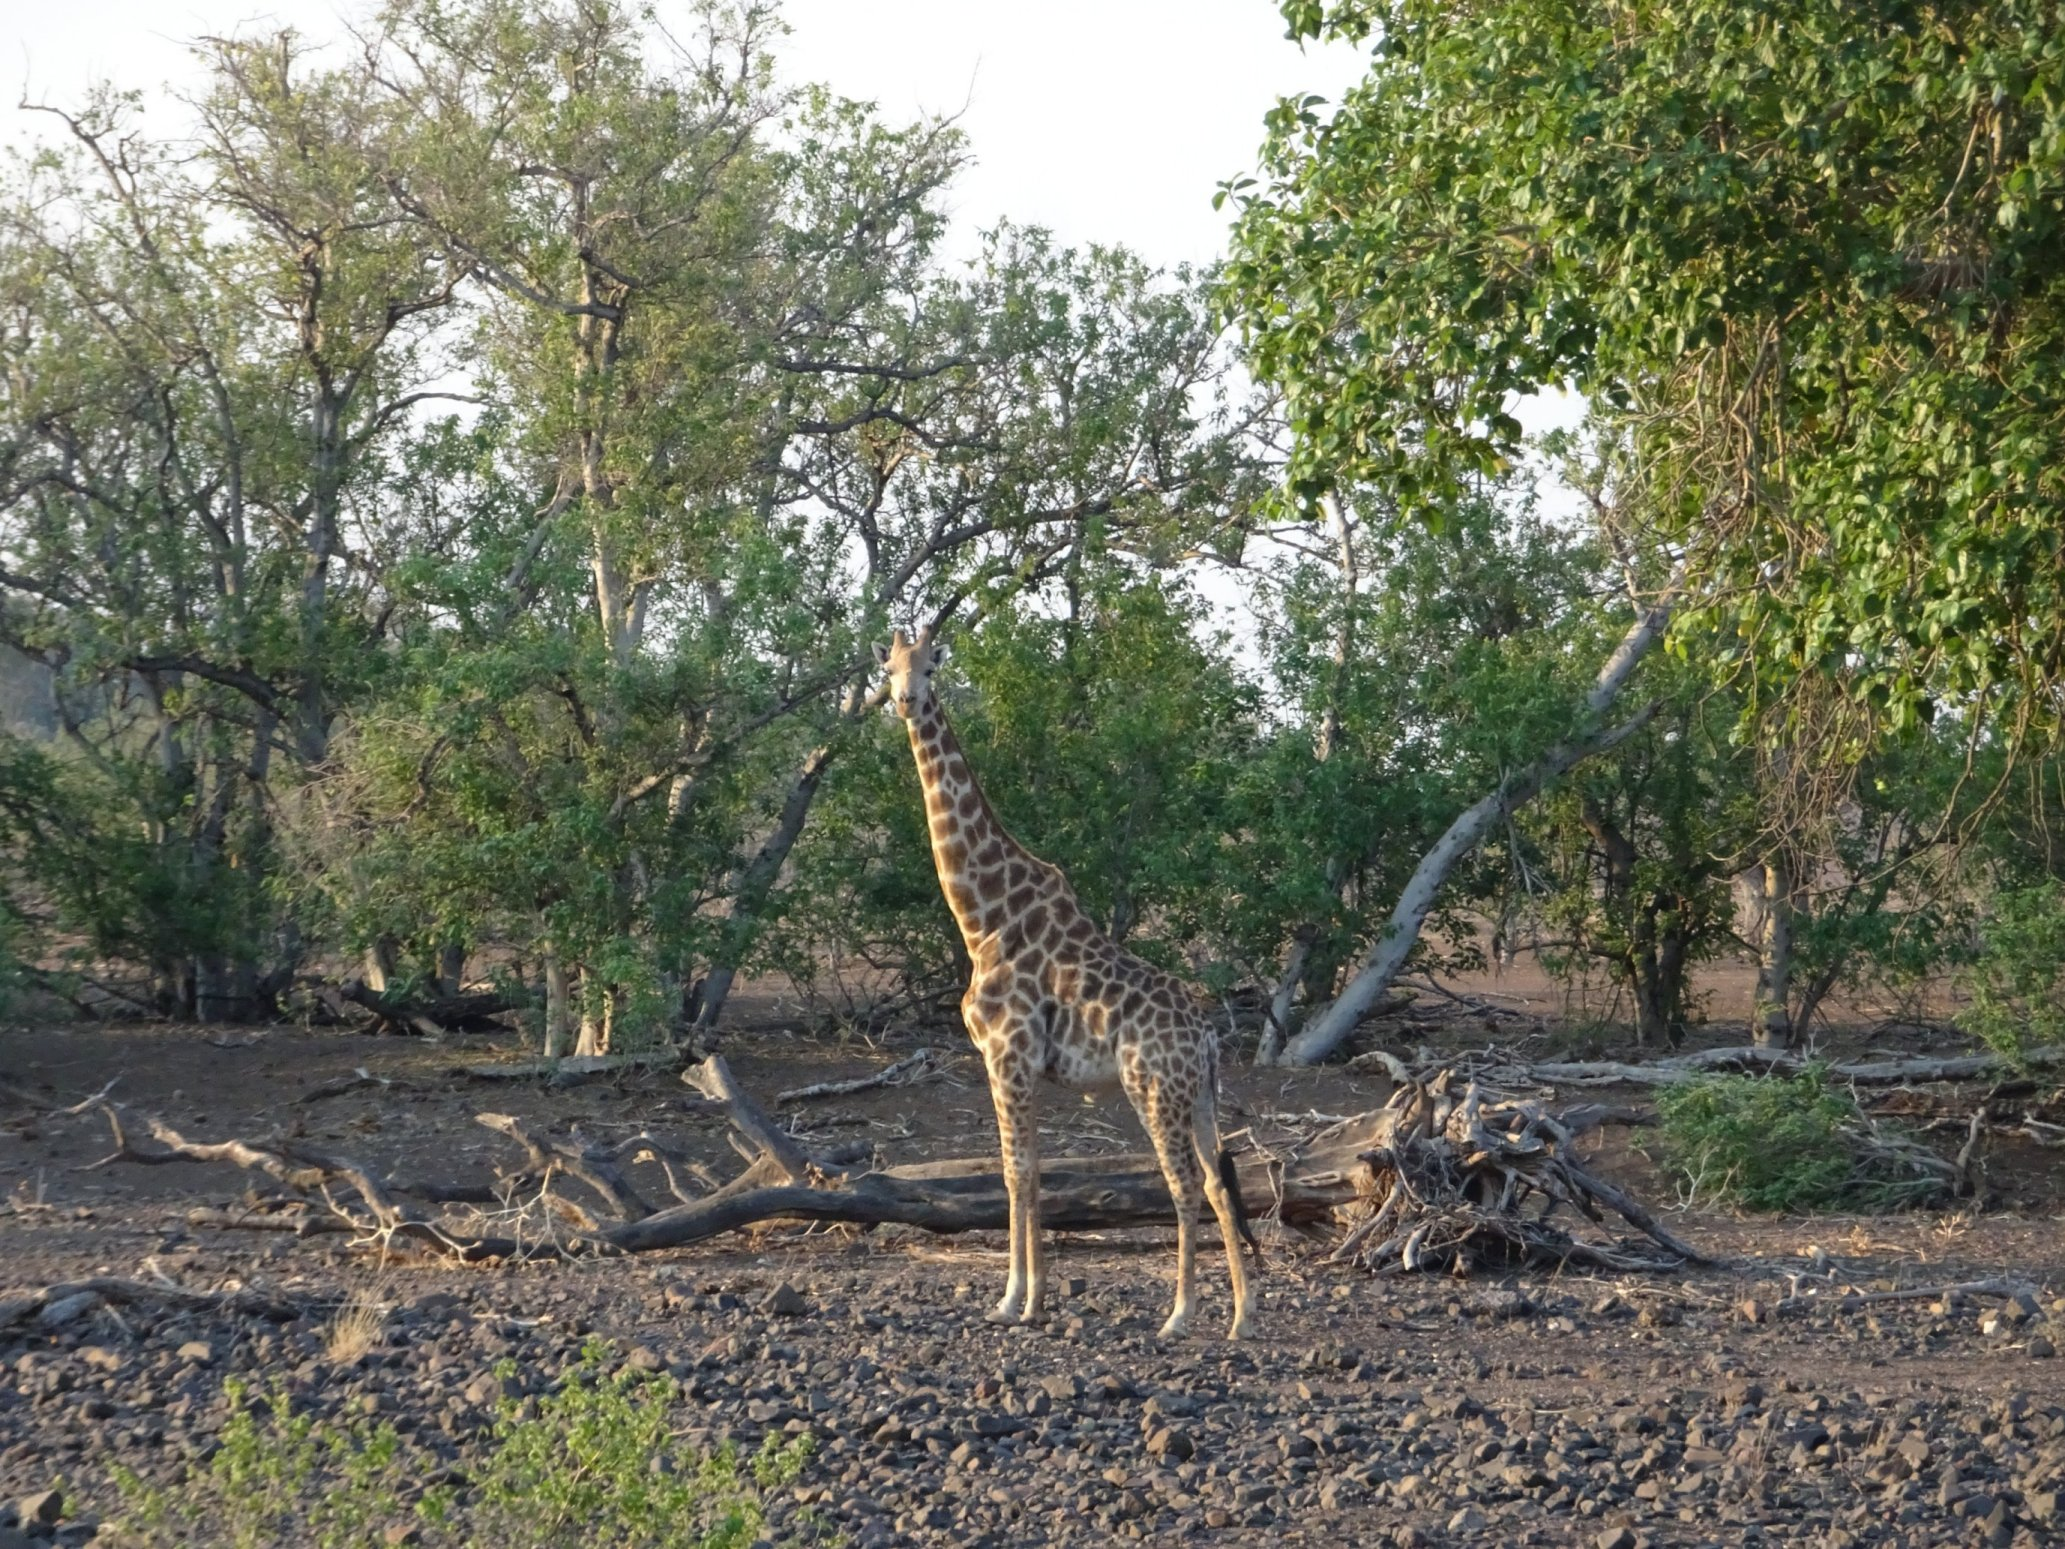 Tuli Trail Safari, Kicking up dust in the African bush., In The Saddle, In The Saddle